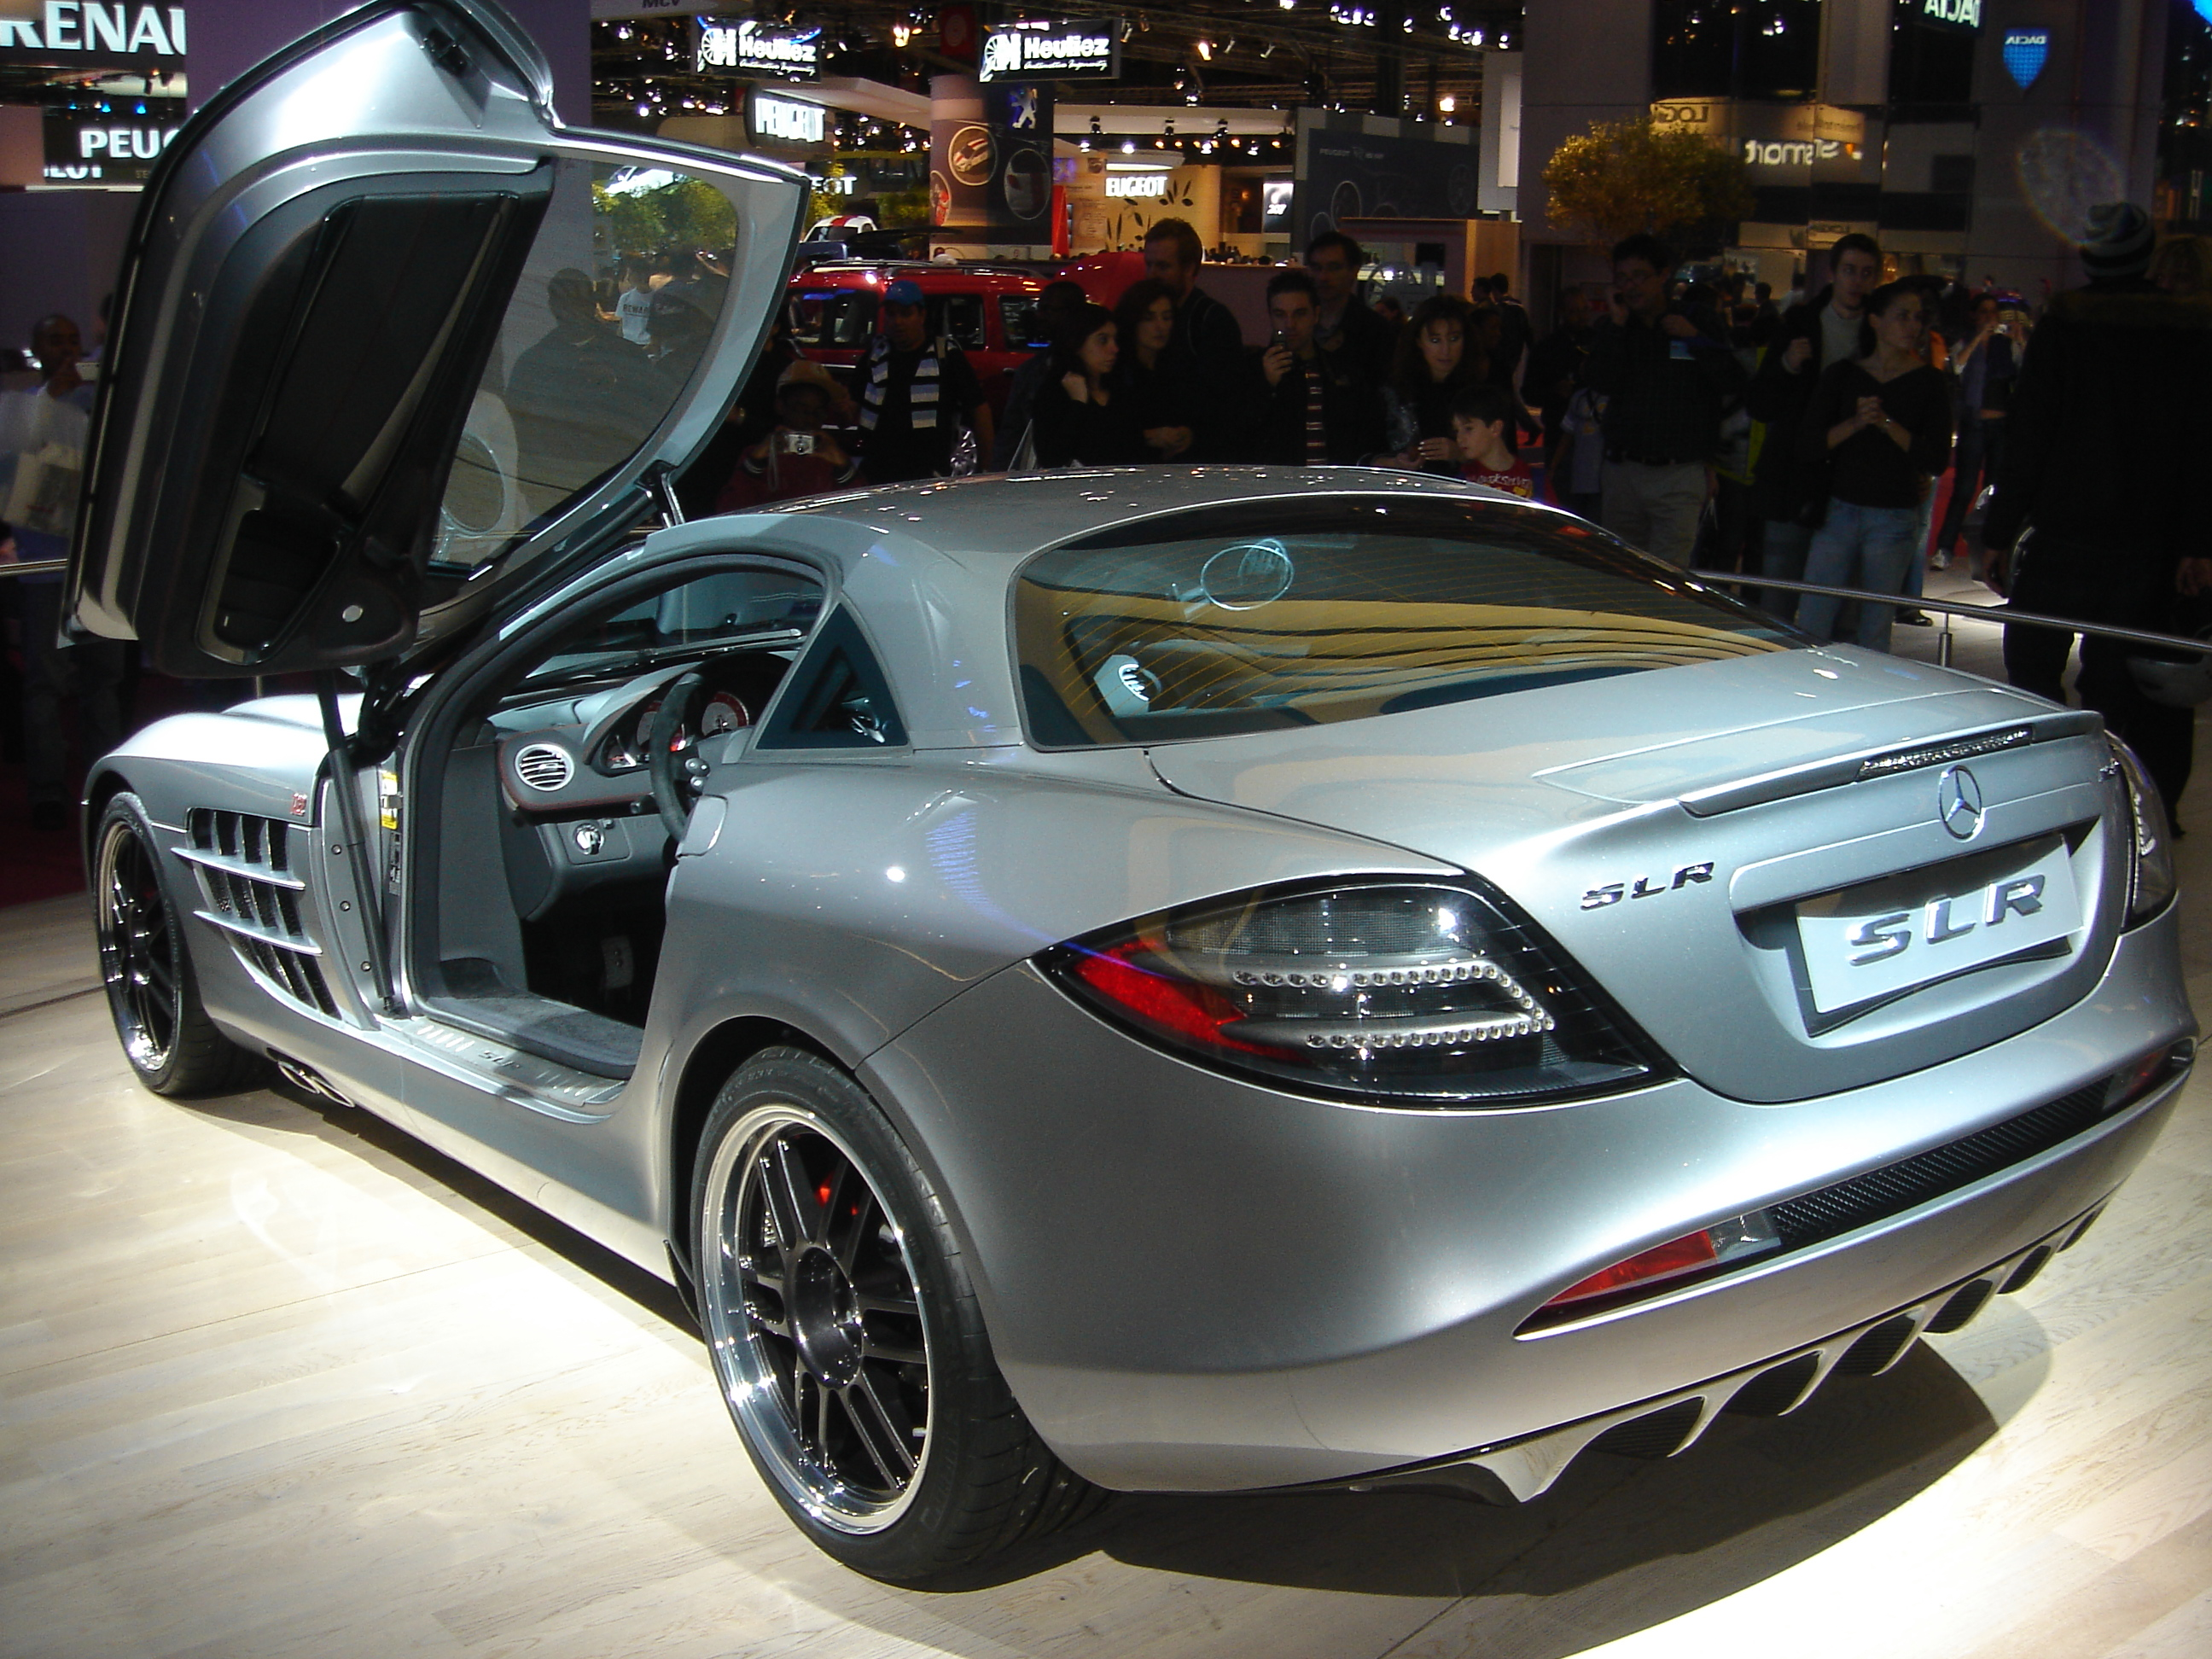 File:Mercedes Benz SLR 722 rear.jpg